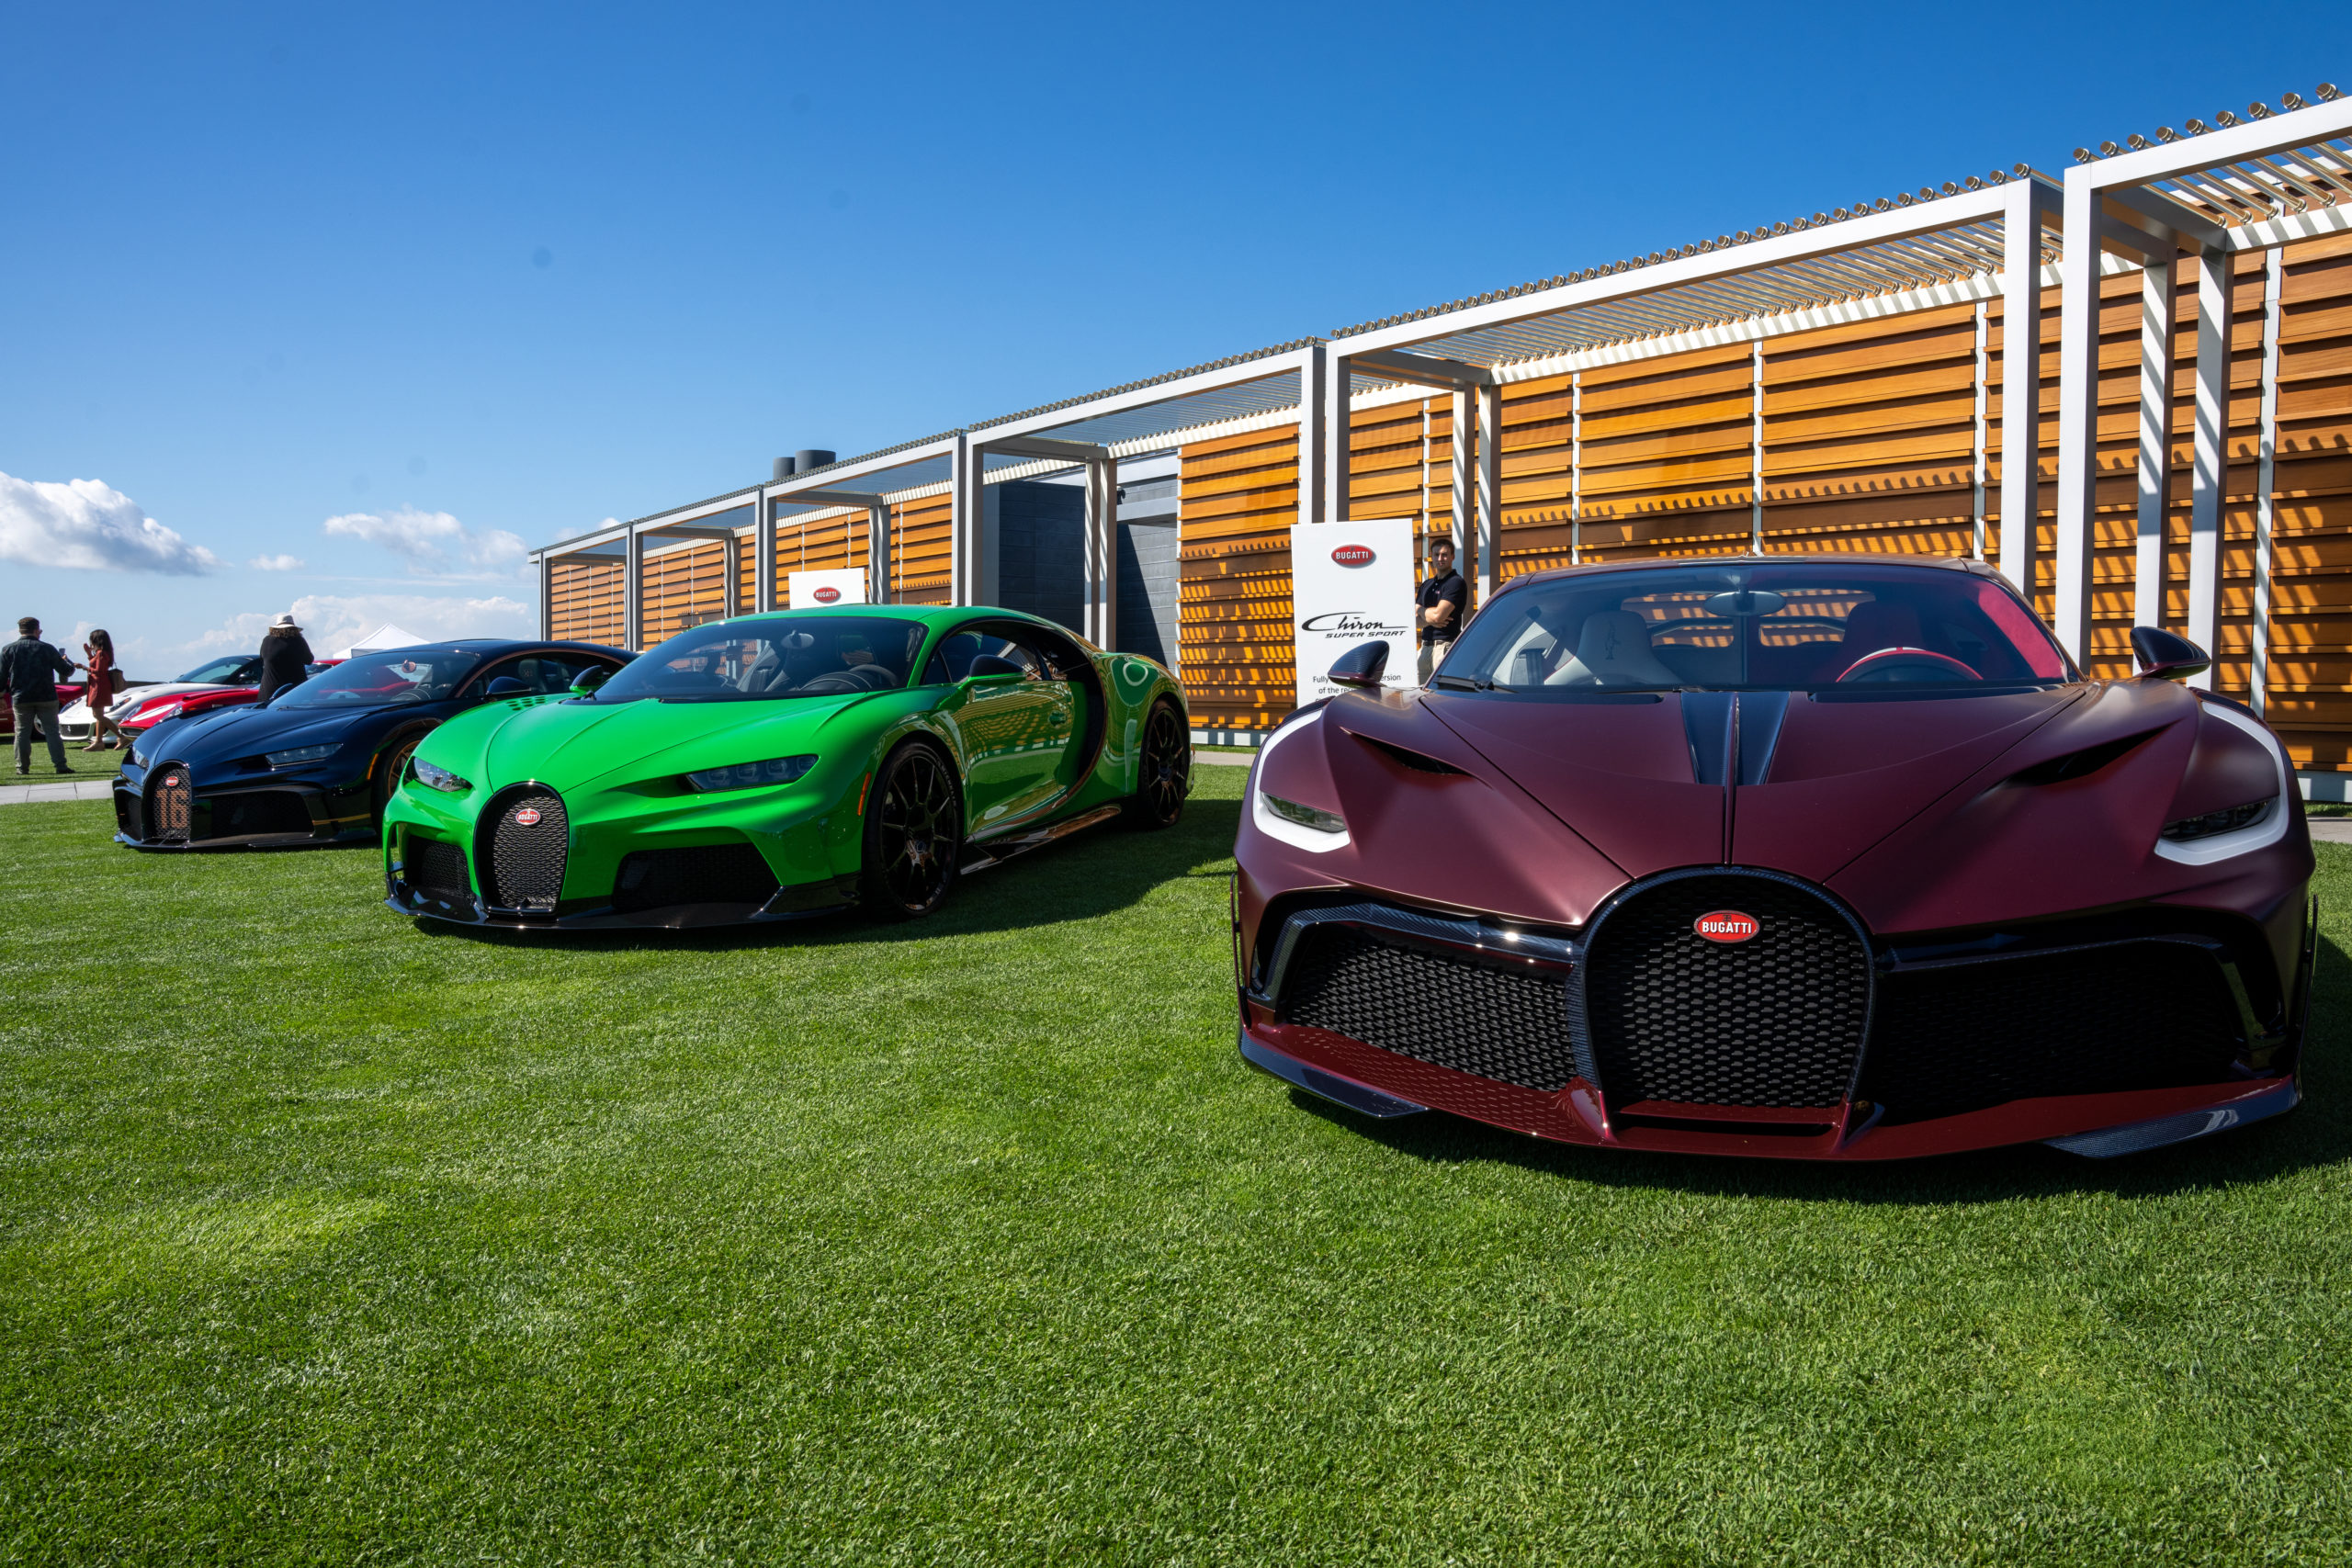 There were several Bugatti's on display on Saturday, three of which were at the entrance to The Bridge.  RON ESPOSITO